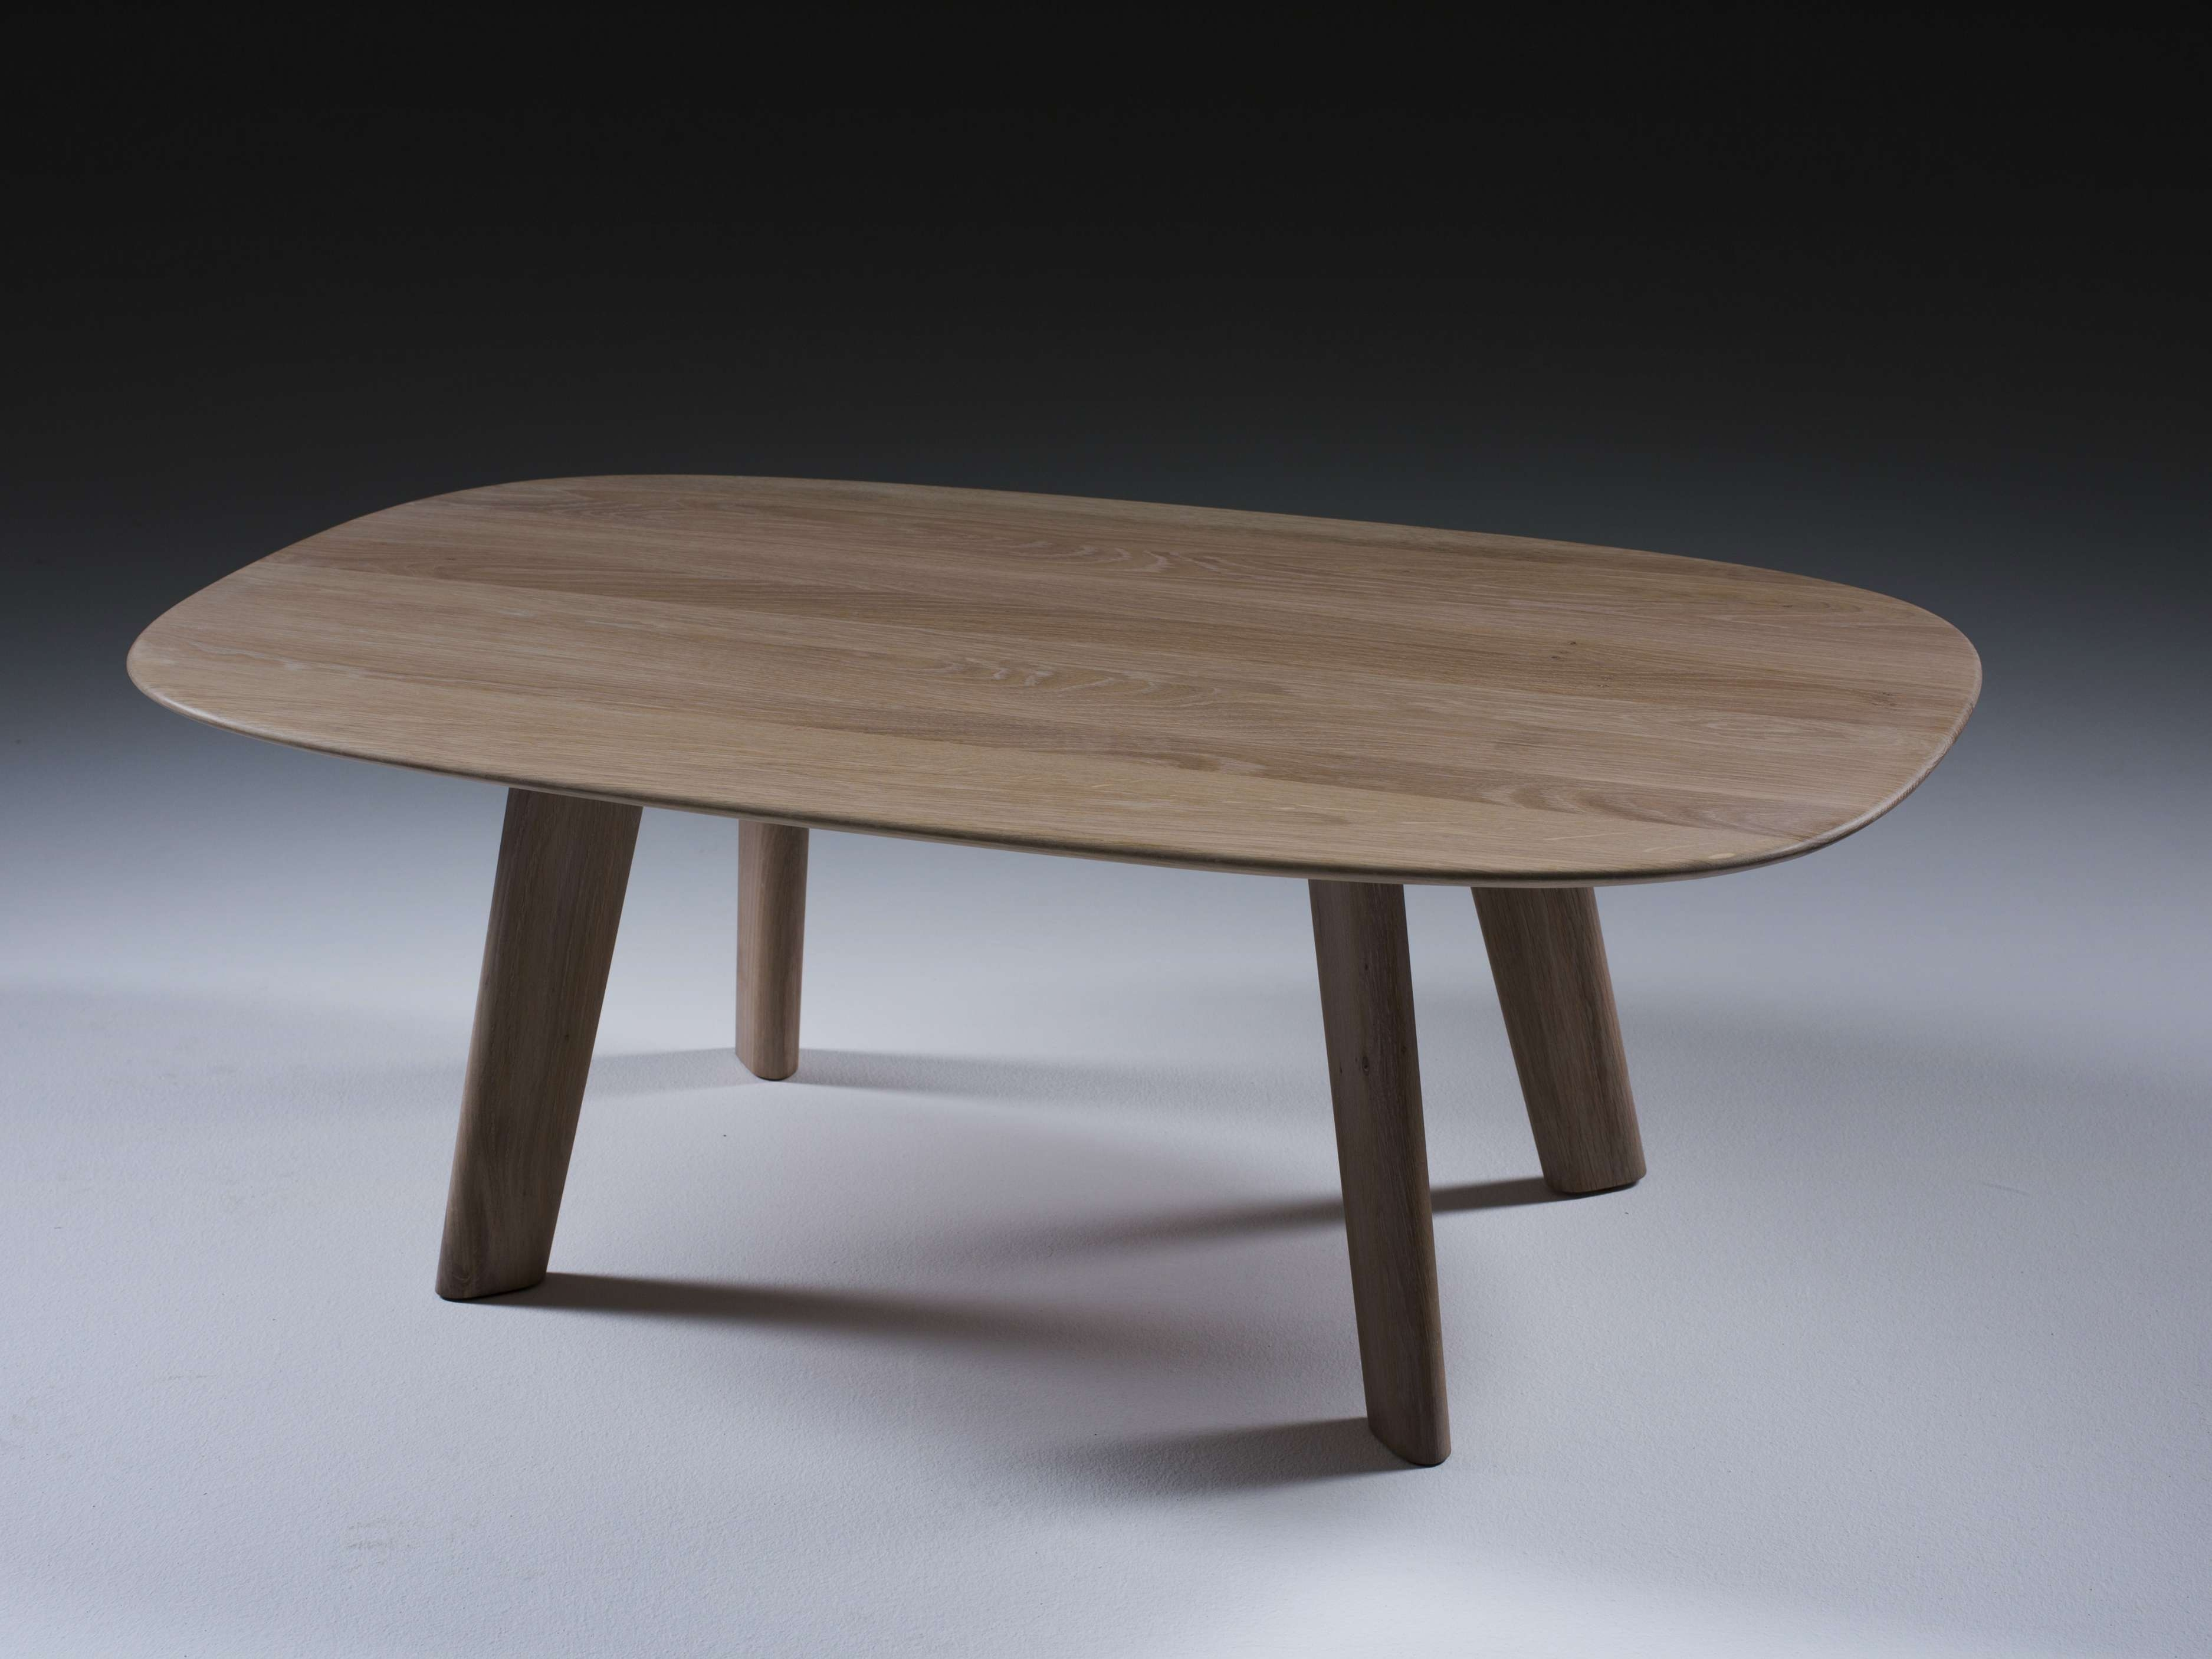 Cherry Wood Oval Coffee Tables Tags : 83 Gleaming Oval Coffee Throughout Popular Oval Wood Coffee Tables (View 19 of 20)